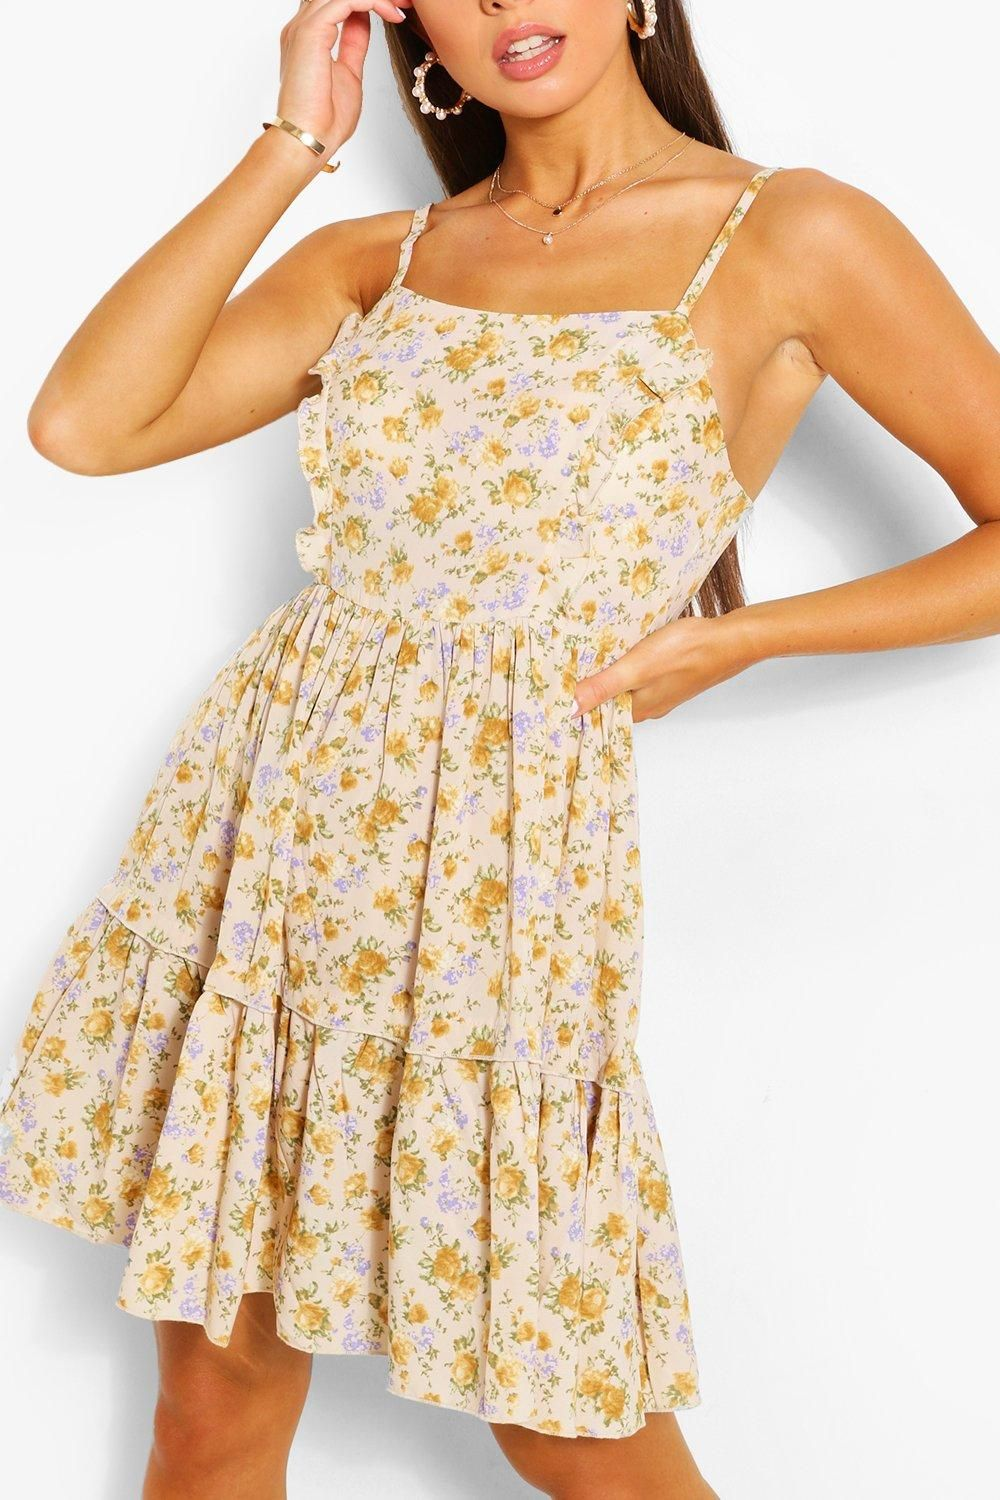 Floral Print Strappy Tiered Swing Dress Boohoo Swing Dress Indie Dresses Yellow Dress [ 1500 x 1000 Pixel ]